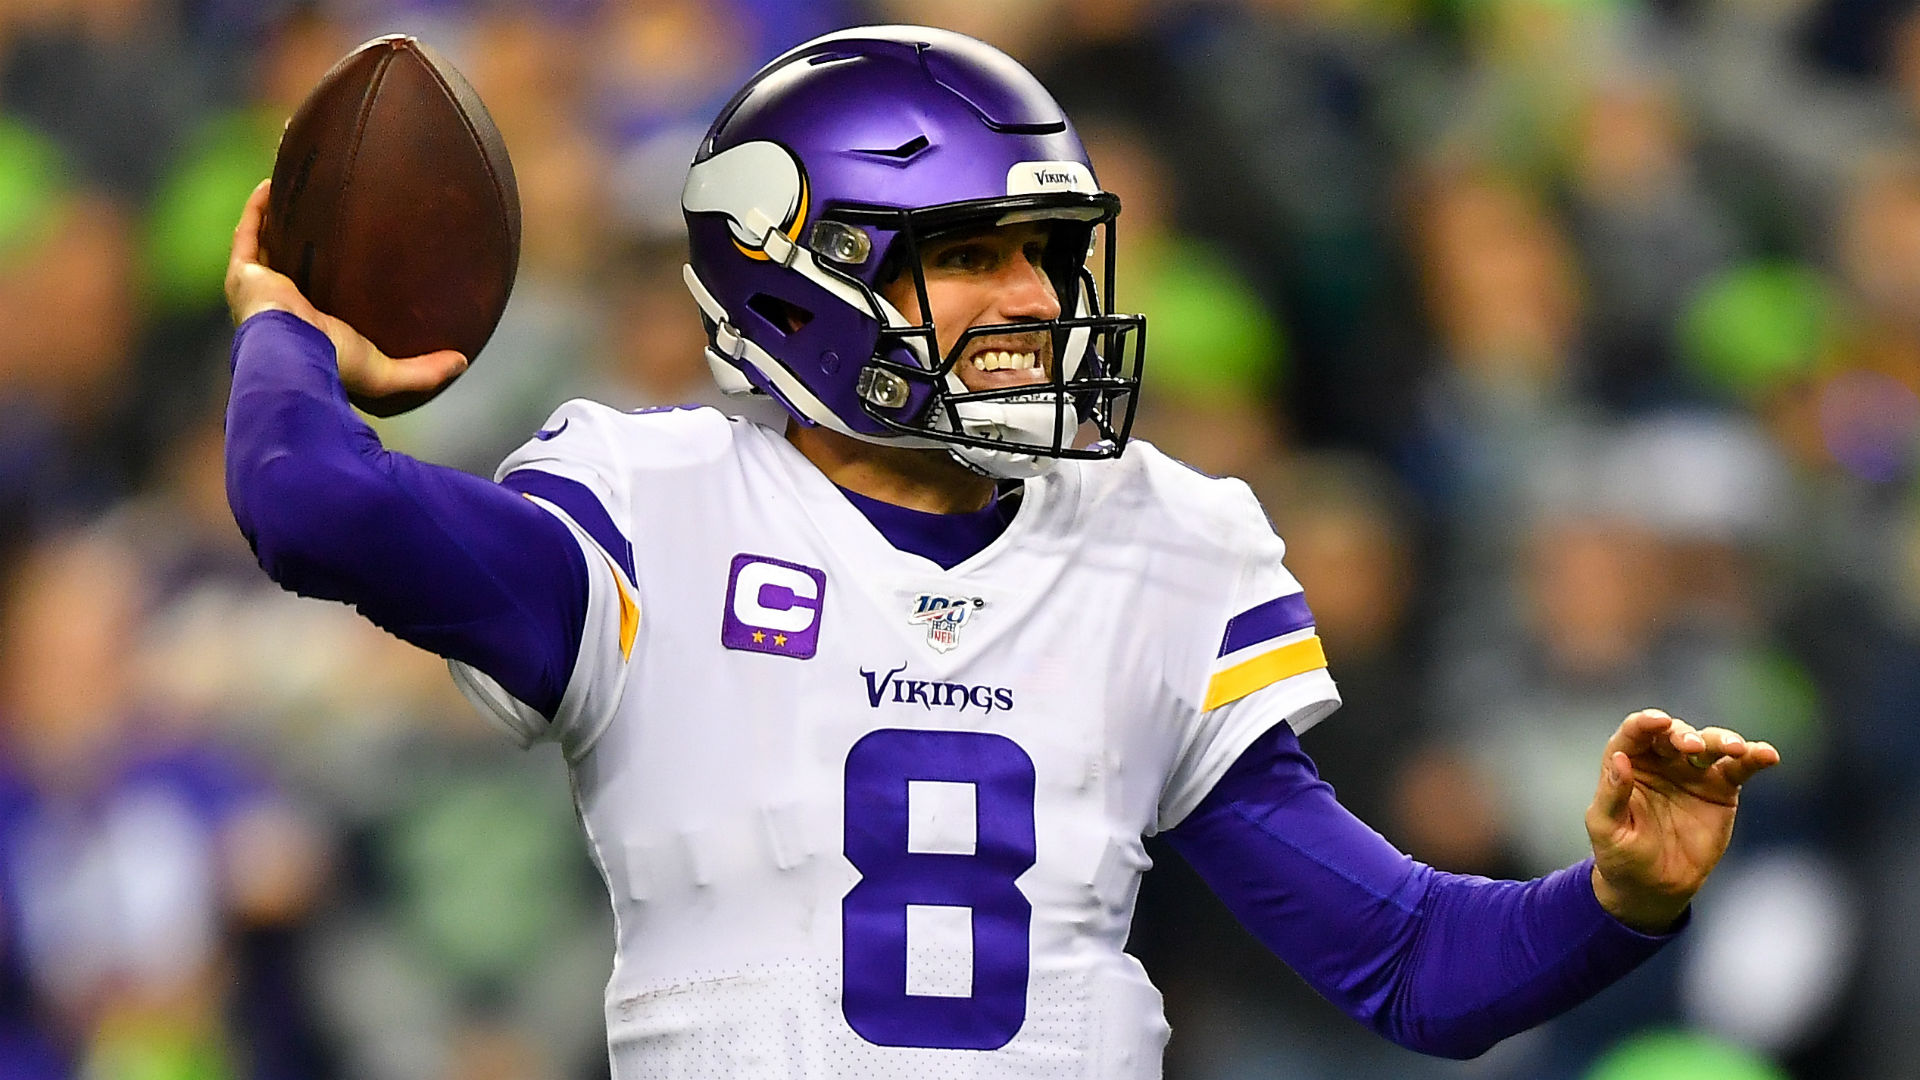 49ers vs. Vikings odds, prediction, betting trends for NFL divisional playoff game